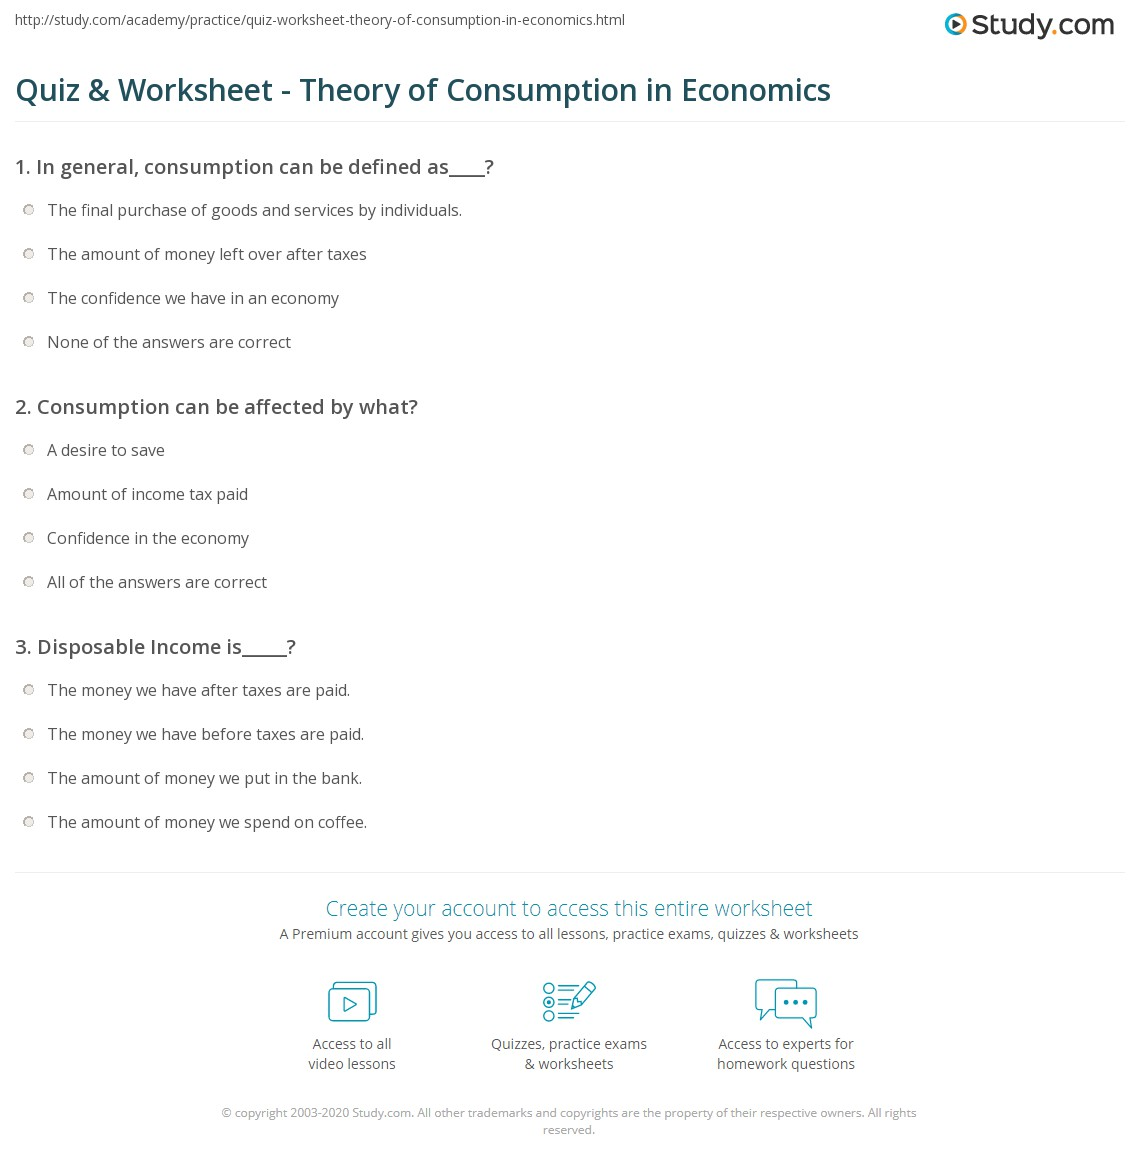 Quiz Worksheet Theory Of Consumption In Economics Study